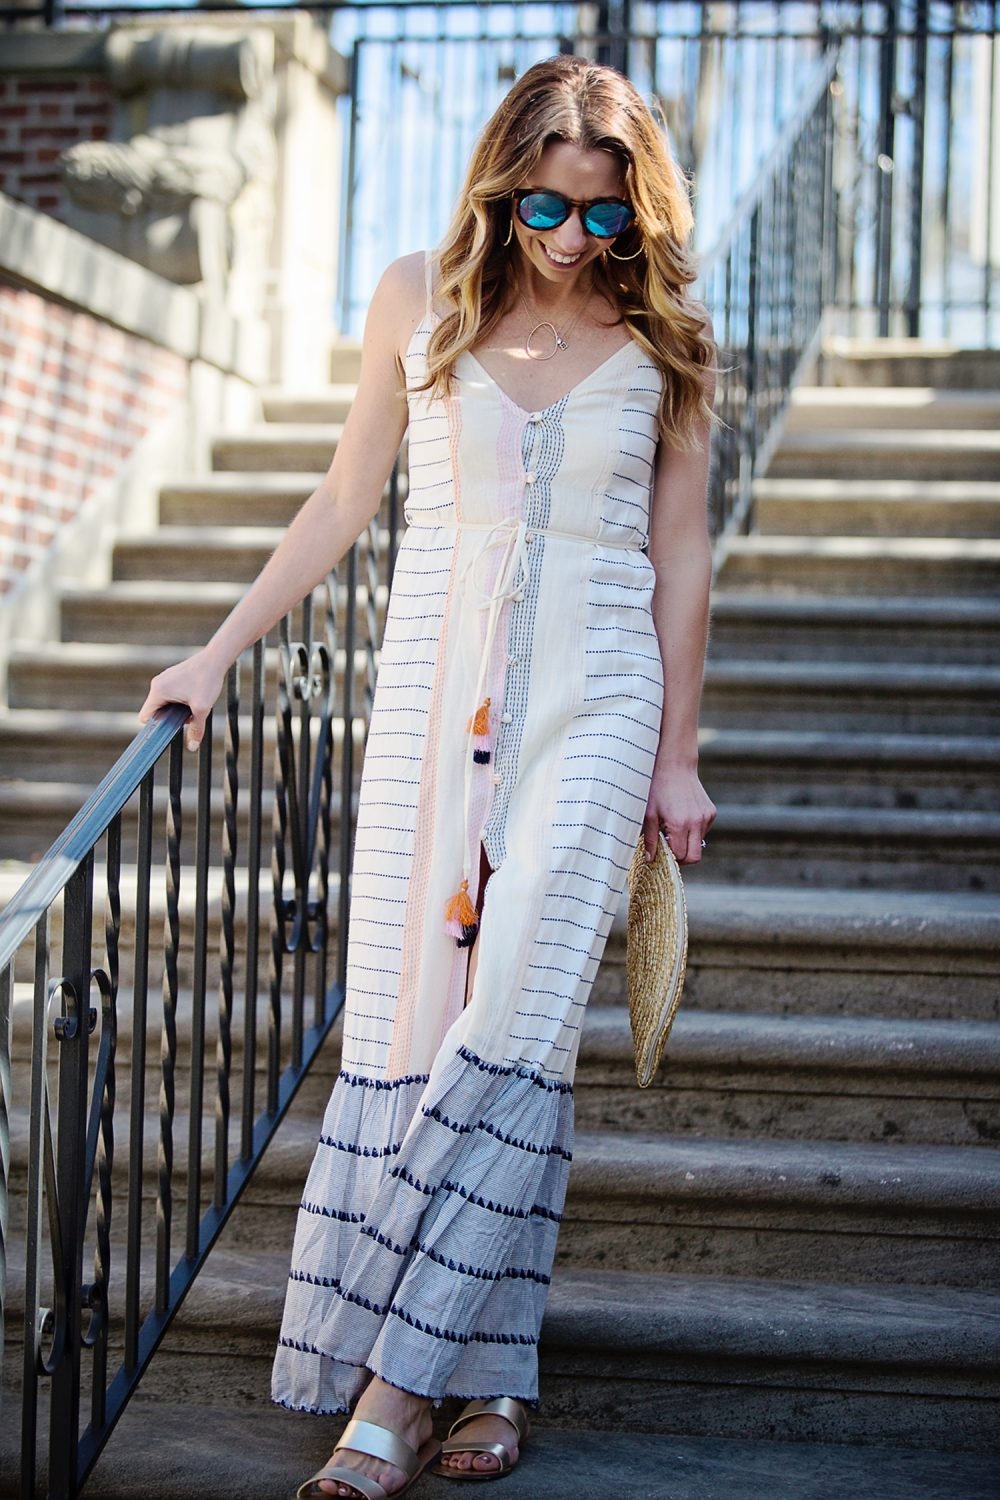 The Motherchic wearing Tularosa tassel dress